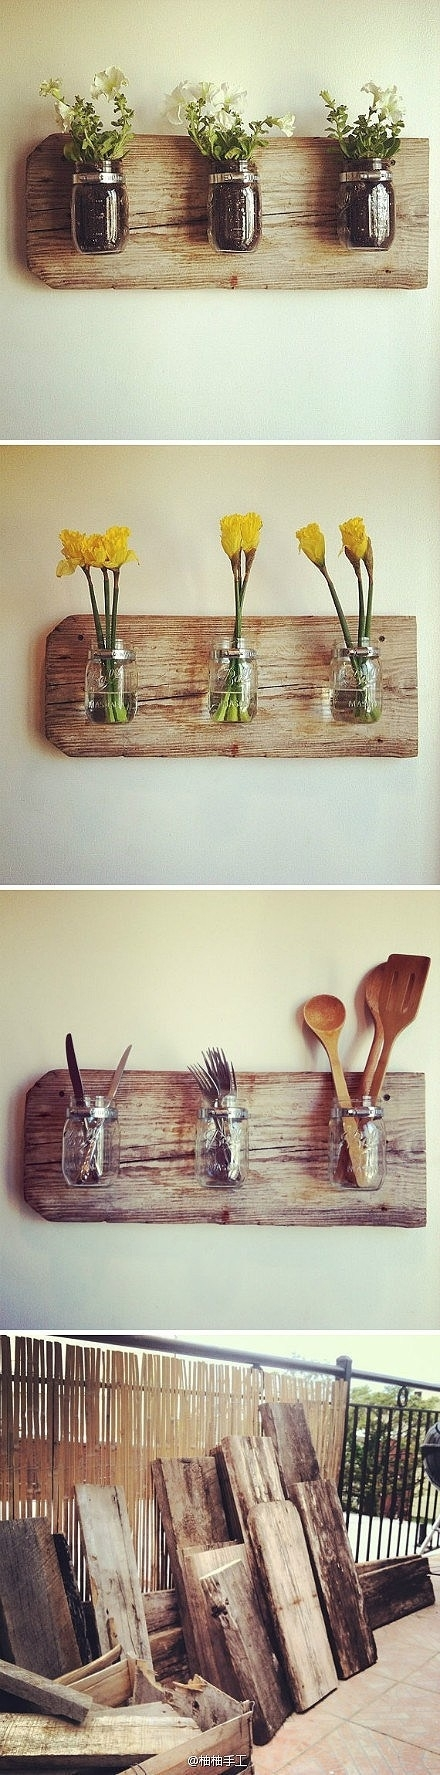 35 Amazing Diy Home Decor Projects To Spruce Up Your Space